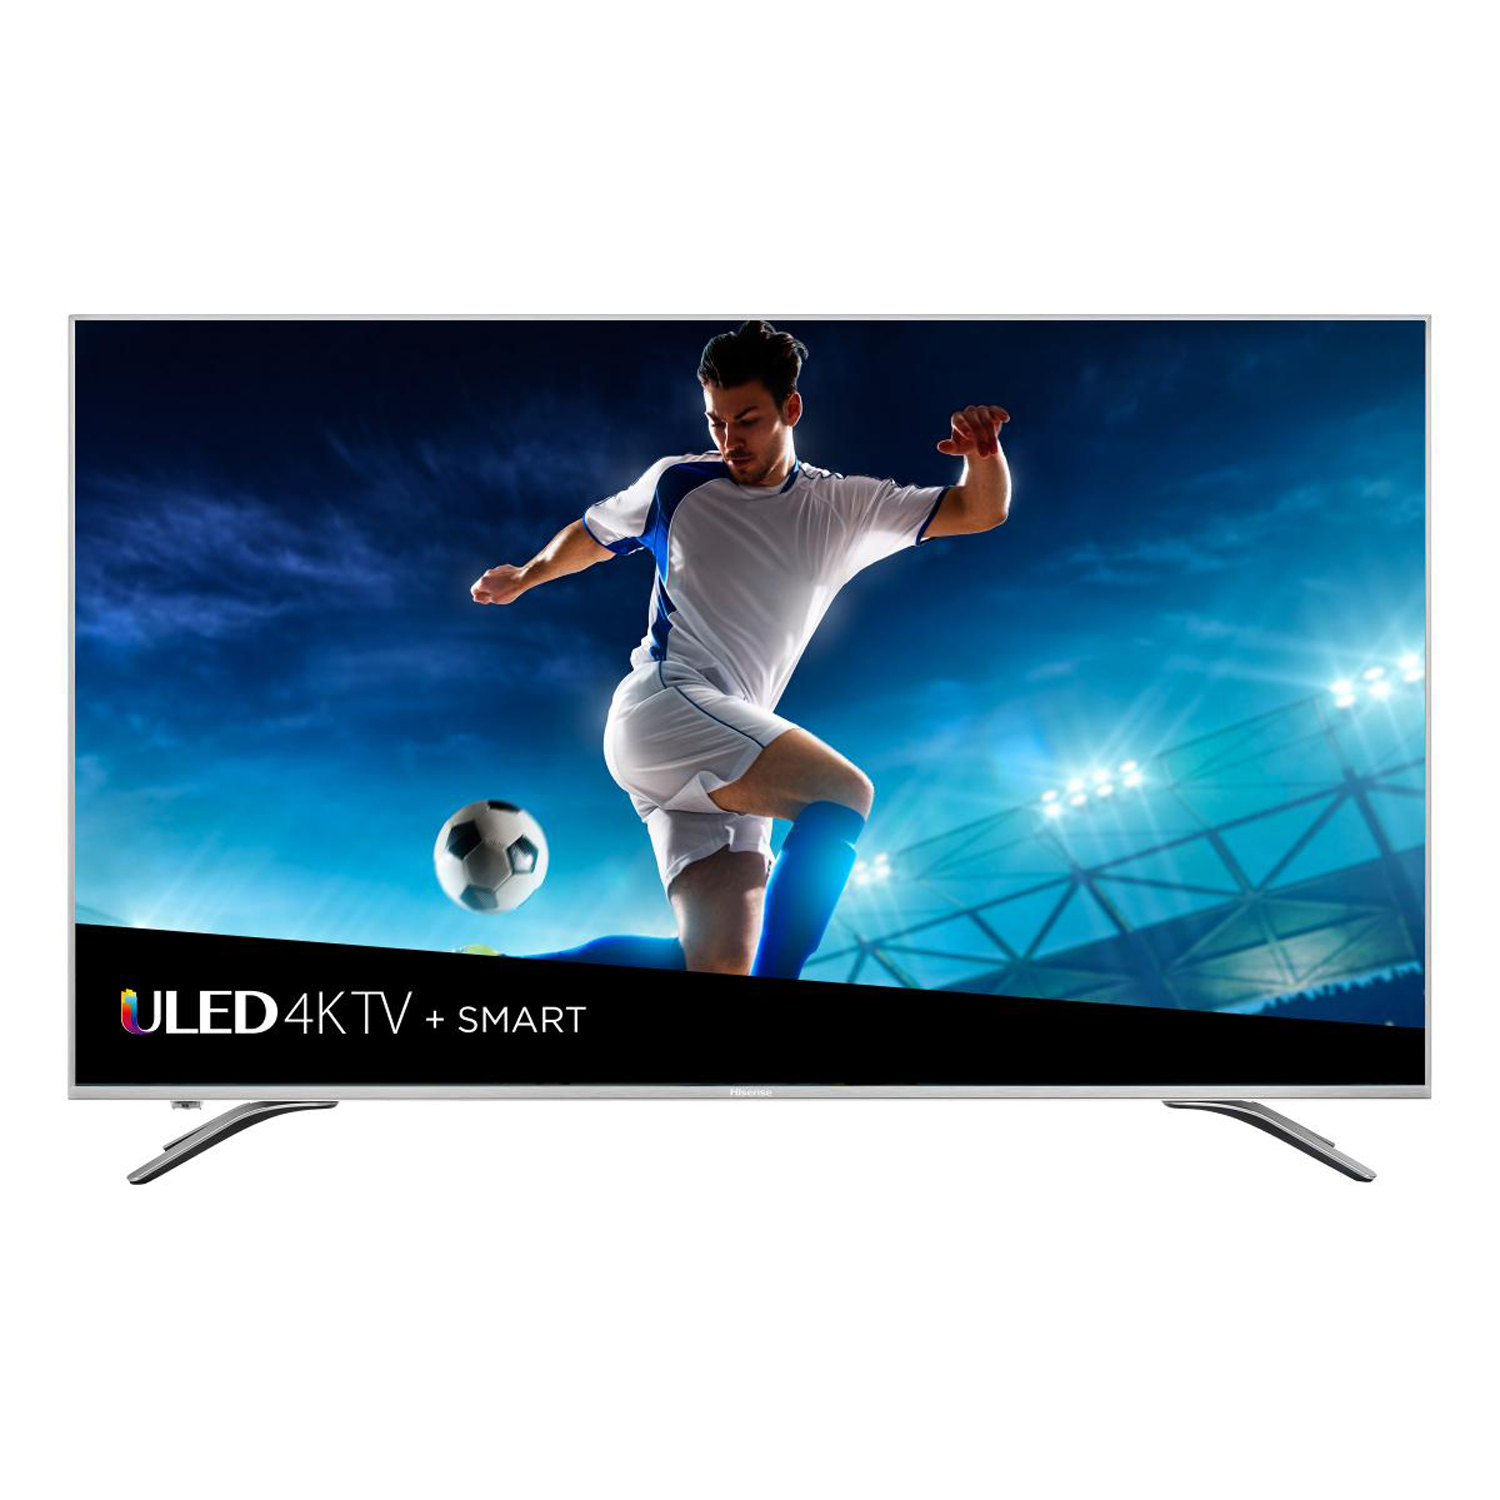 Refurbished Hisense 55 in. 9 Series 4K UHD Smart TV LED W/HDR and Works with Amazon Alexa